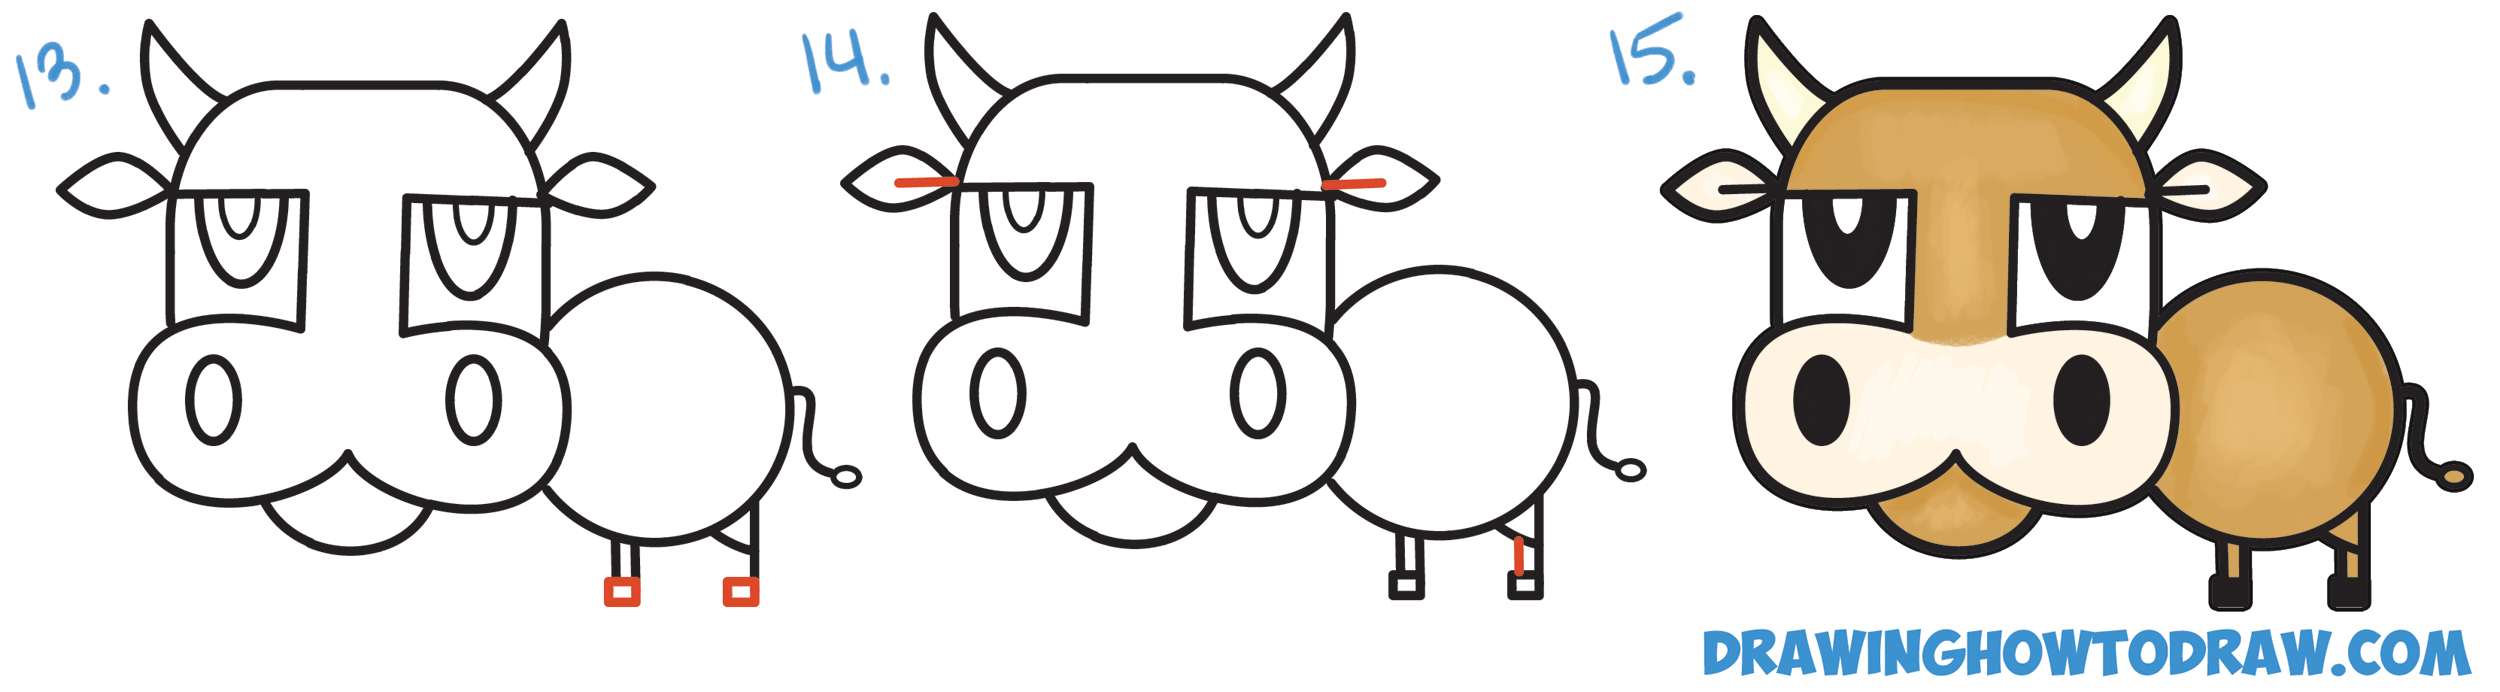 Learn How to Draw a Cartoon Bull / Cow from Numbers & Letters Simple Steps Drawing Lesson for Children & Beginners